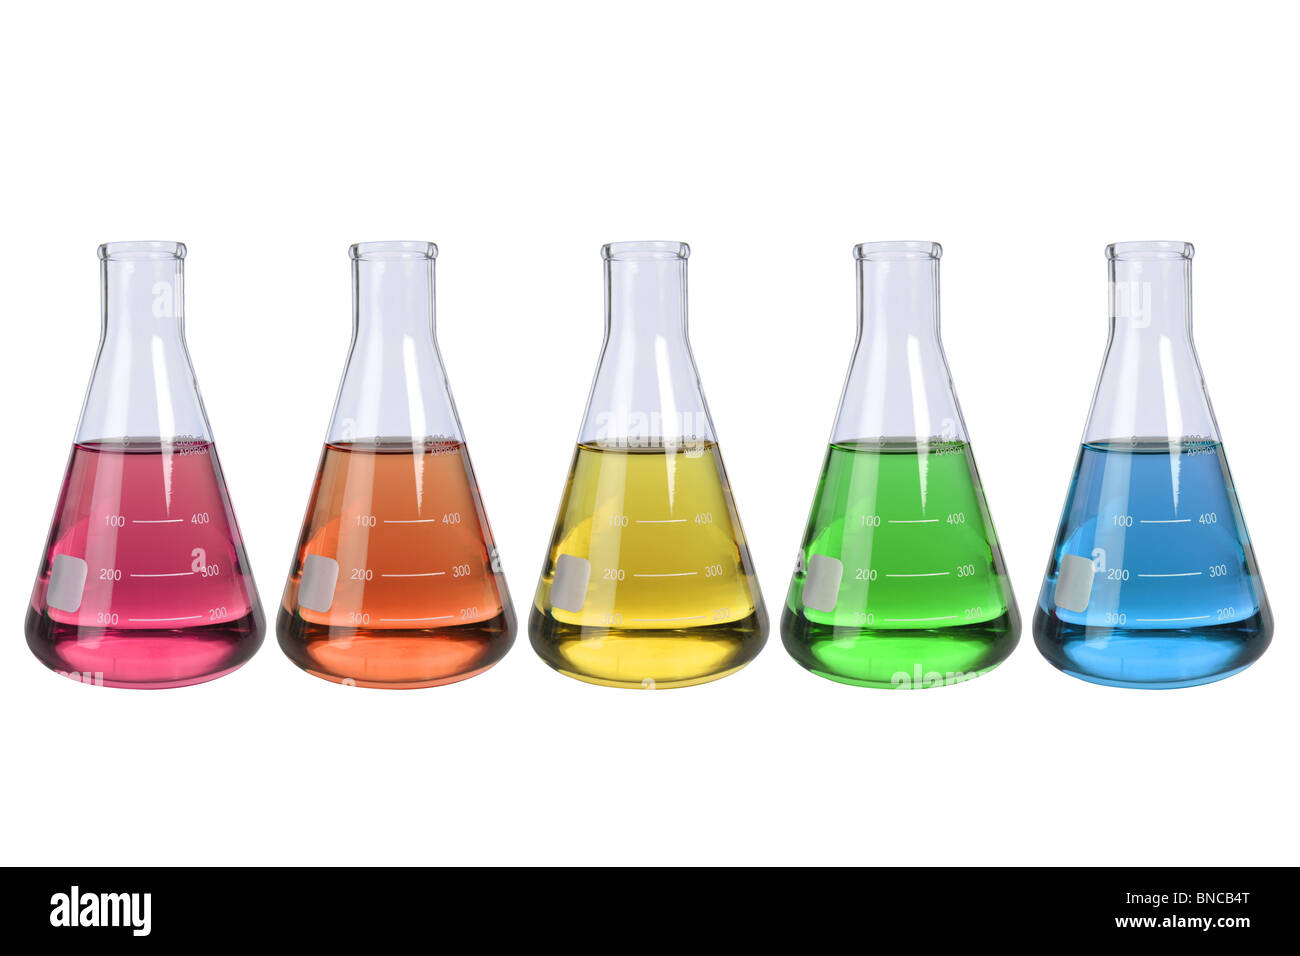 Laboratory flasks with fluids of different colors isolated over white background - Stock Image